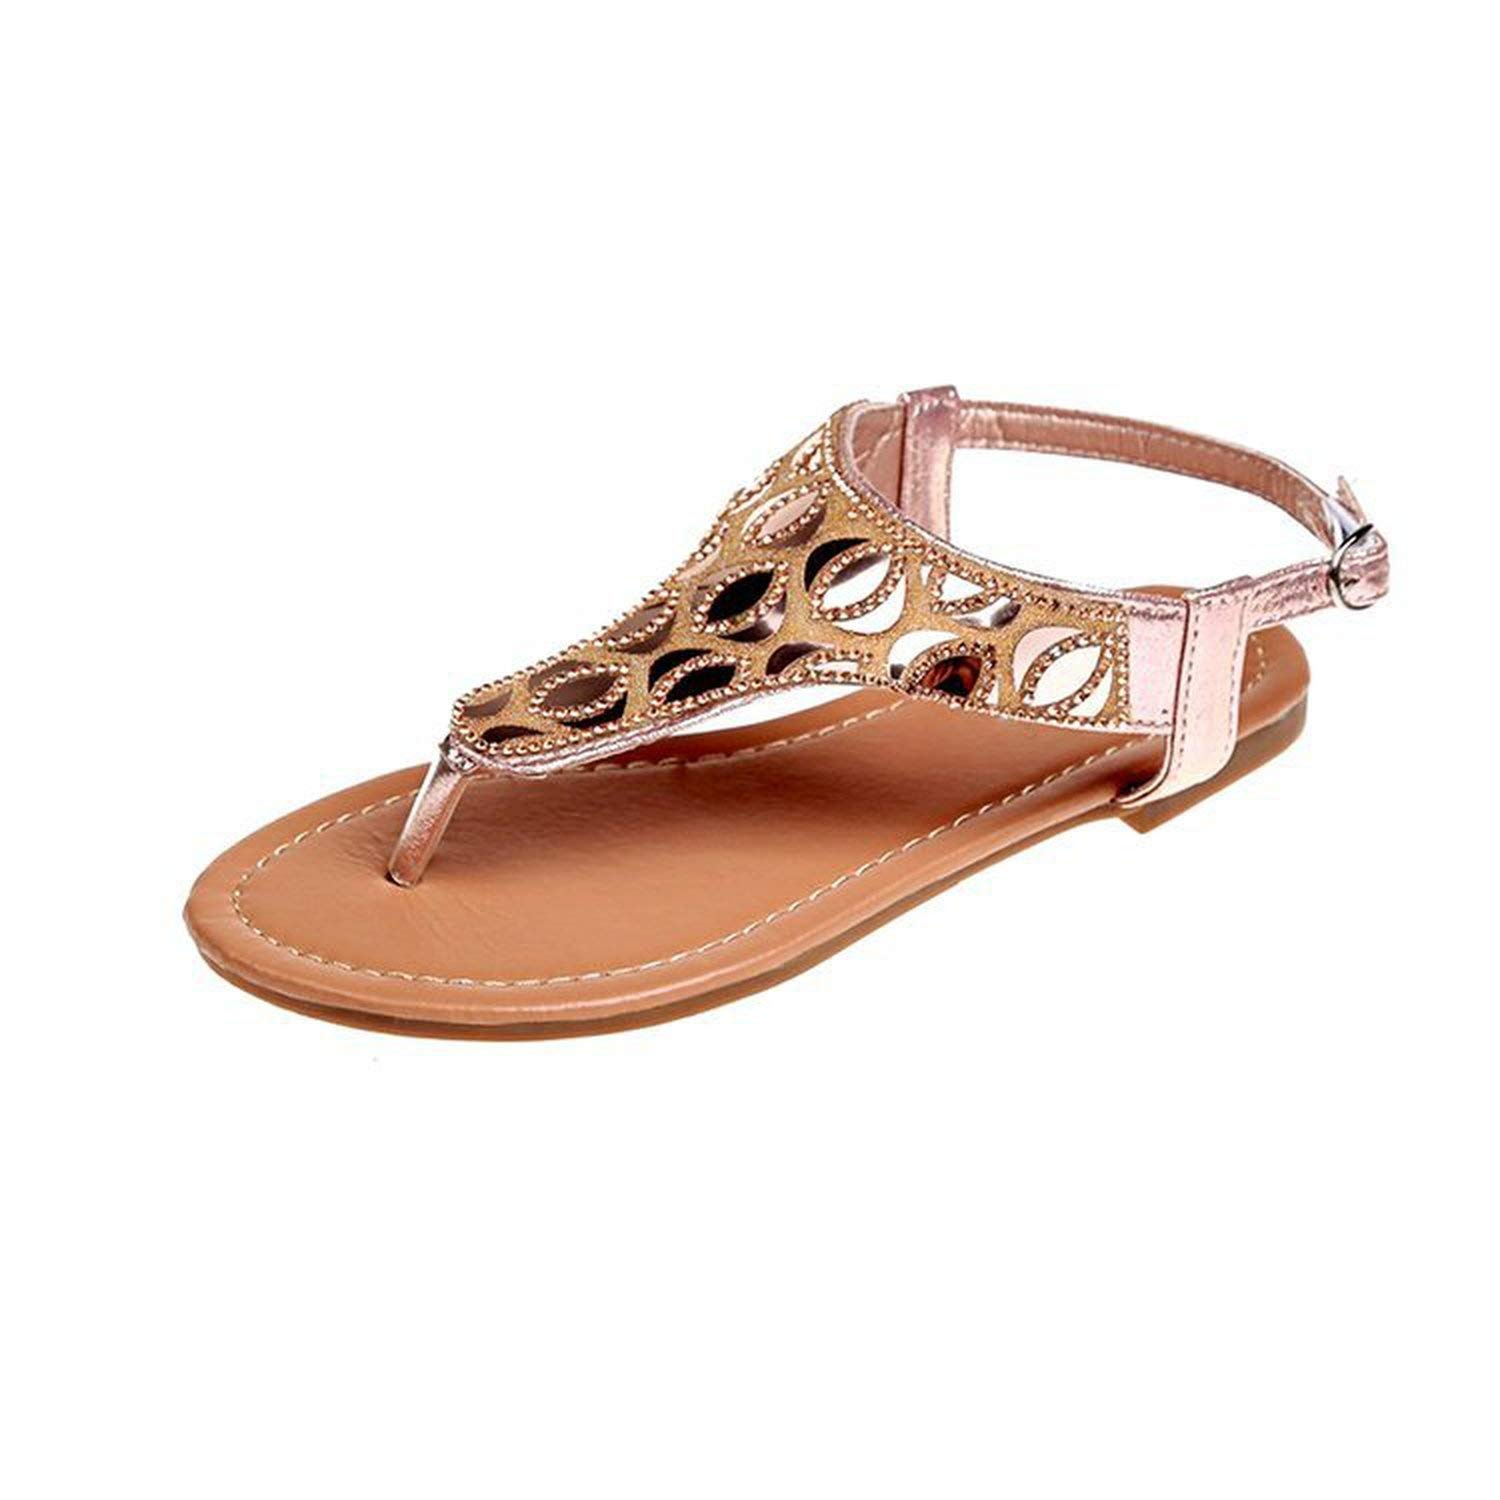 a7e2325d8bc3 Get Quotations · Kinggolder Sandals Flat Heel Summer Shoes Casual Leather  Thong Sandals Slip Resistance Women Crystal Flats Sandals